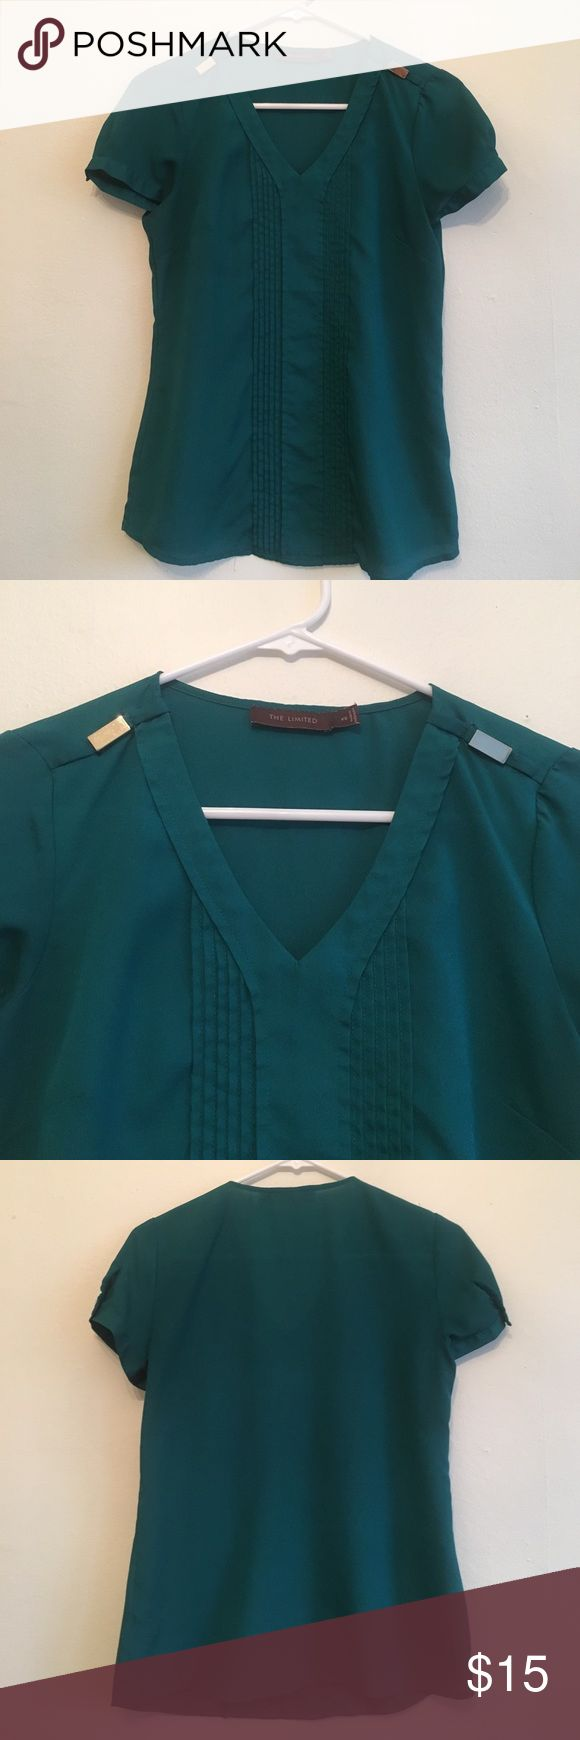 The Limited turquoise shirt with gold buckles I wore this a few times to the office with black or dark blue slacks and a suit jacket but looks great alone or with a cardigan, not super form fitting so it's comfortable to wear all day and doesn't stretch much so it won't shrink, size XS but fits like a normal small The Limited Tops Blouses